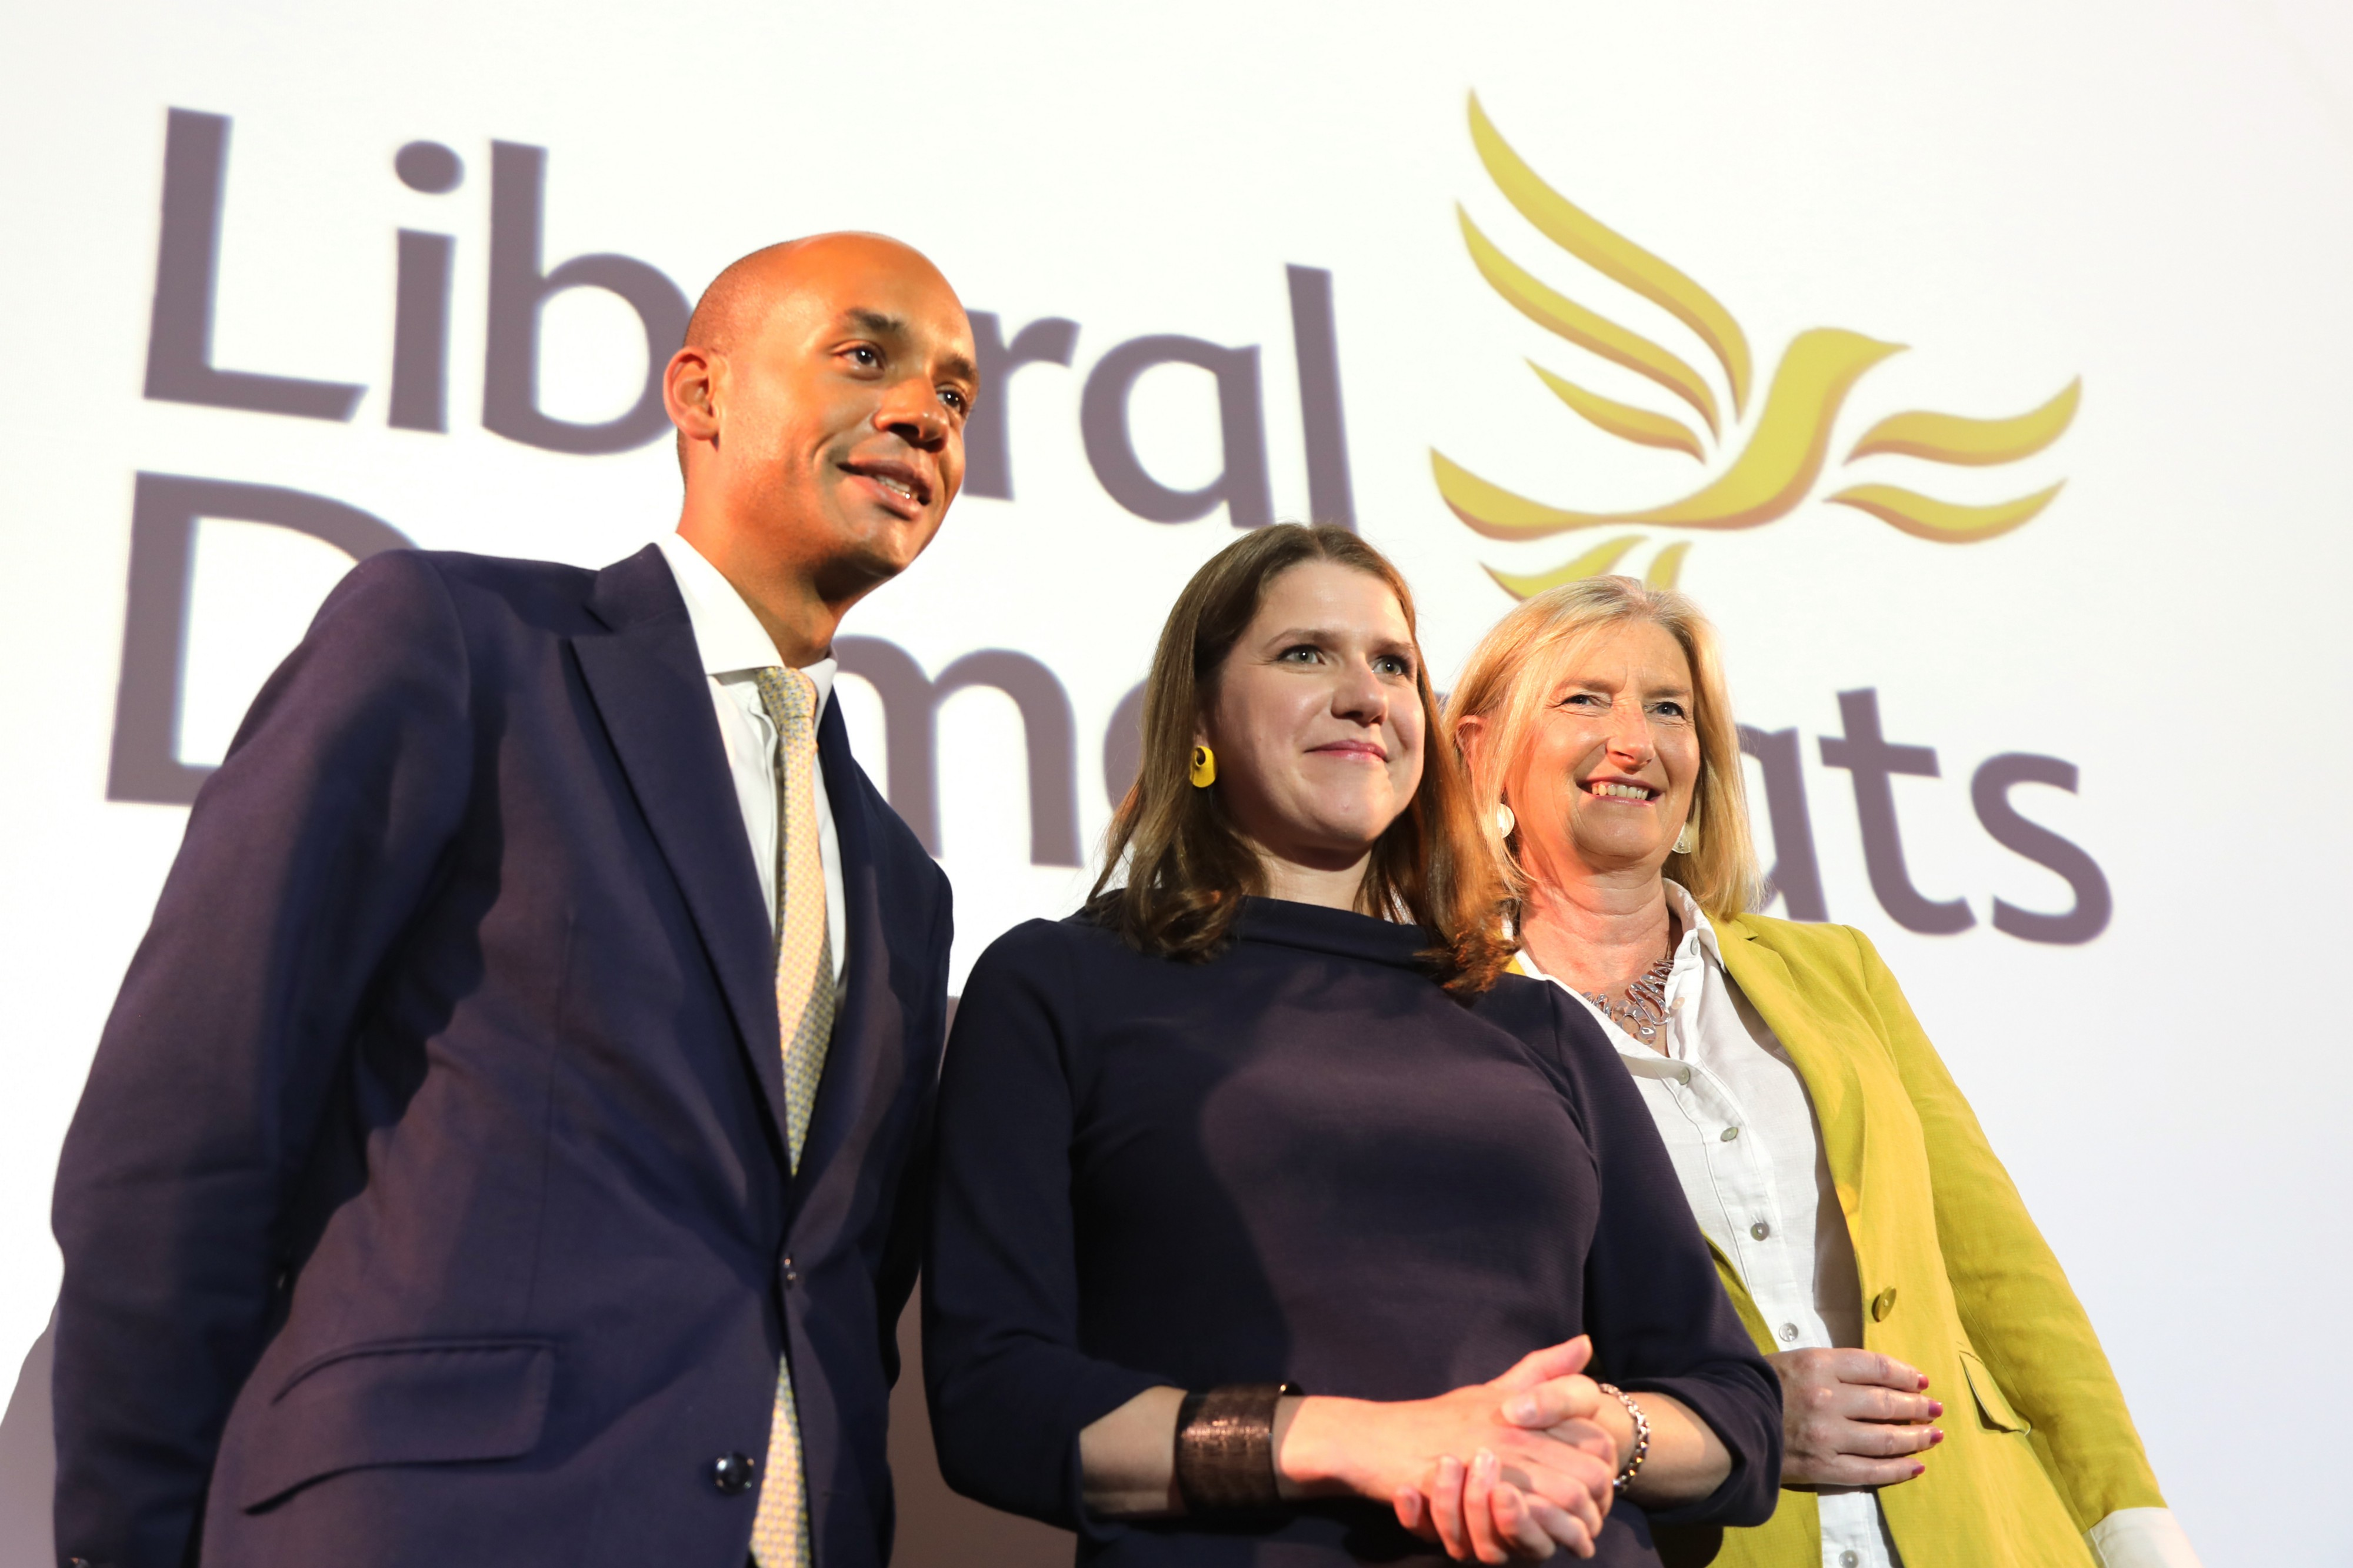 From left to right, Chuka Umunna, Jo Swinson and Sarah Wollaston posing in front of a a sign saying 'Liberal Democrats'